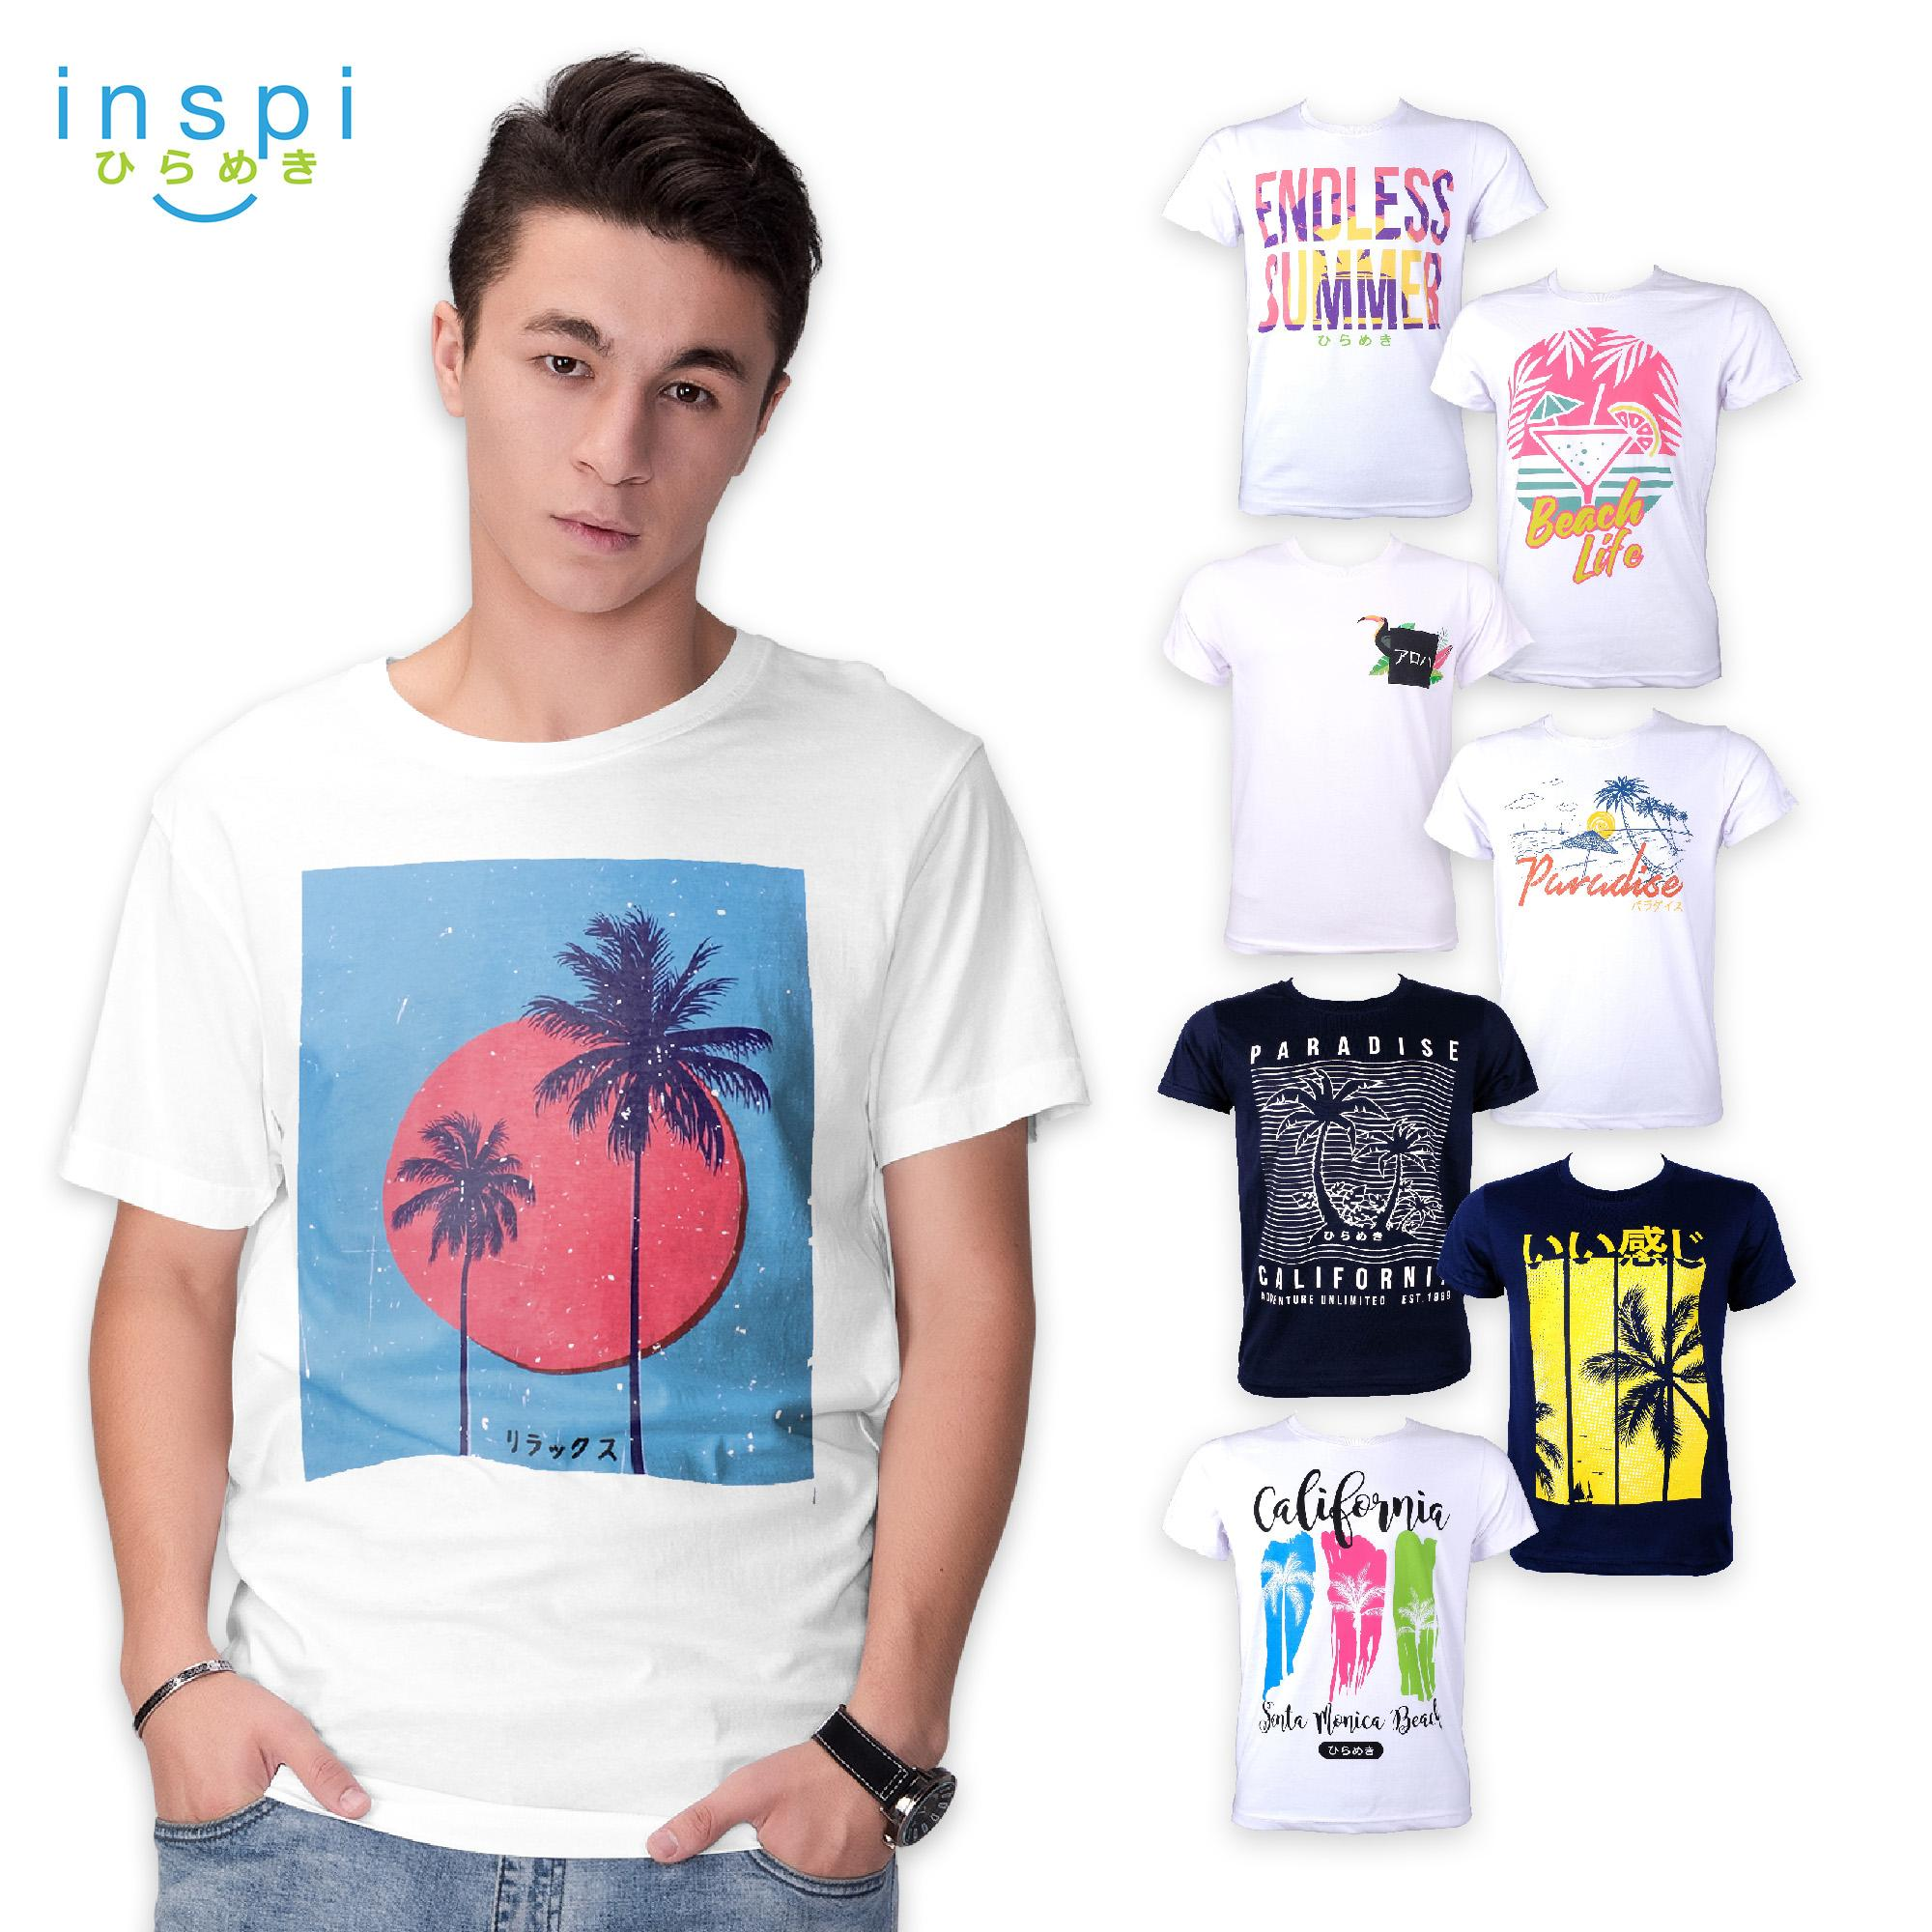 a3e95bf0c44 INSPI Tees Summer Collection tshirt printed graphic tee Mens t shirt shirts  for men tshirts sale